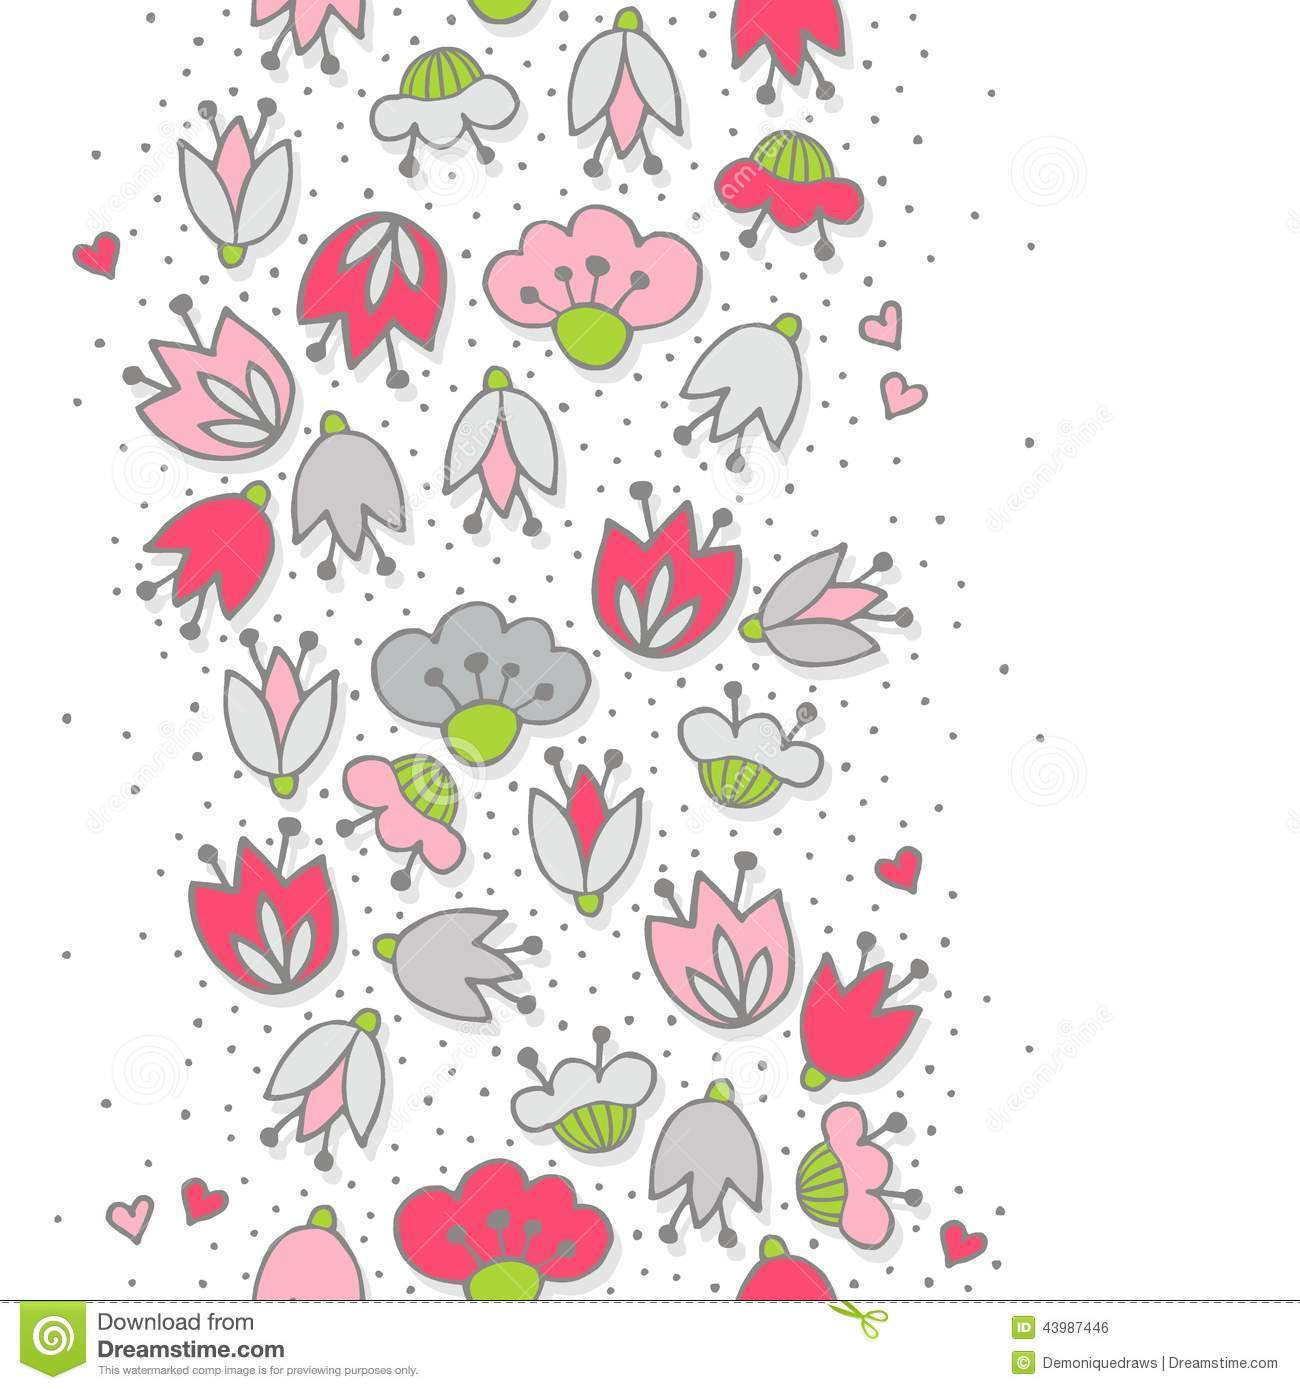 Pink flowers and hearts on dotted white seamless vertical border download pink flowers and hearts on dotted white seamless vertical border stock vector illustration of mightylinksfo